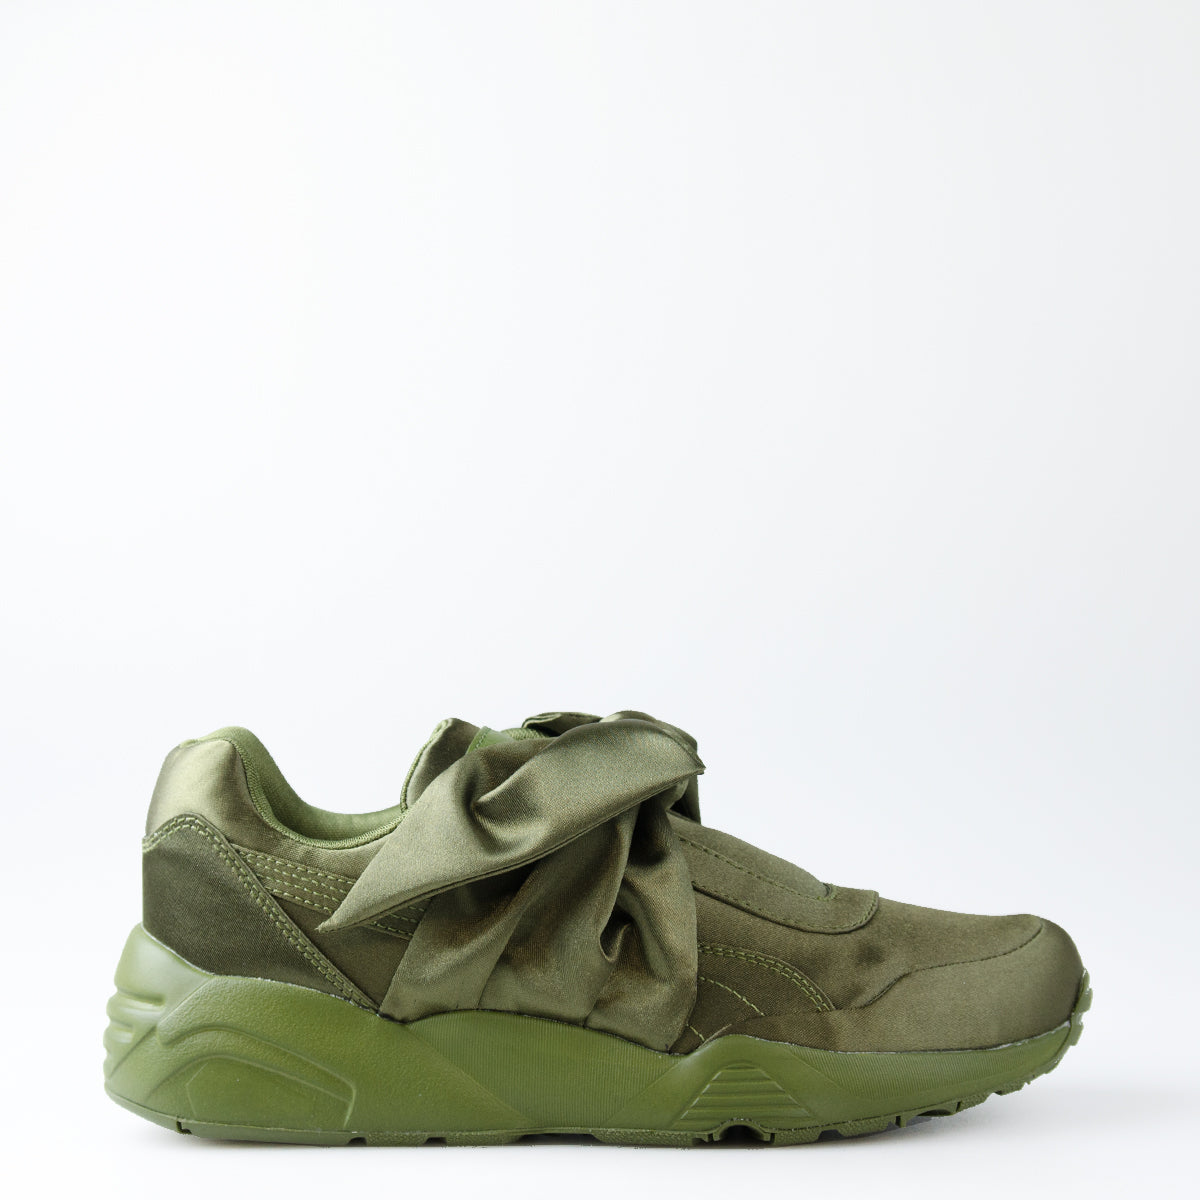 new style d8c26 51aba Women's Puma X Fenty by Rihanna Bow Sneakers Olive Green ...